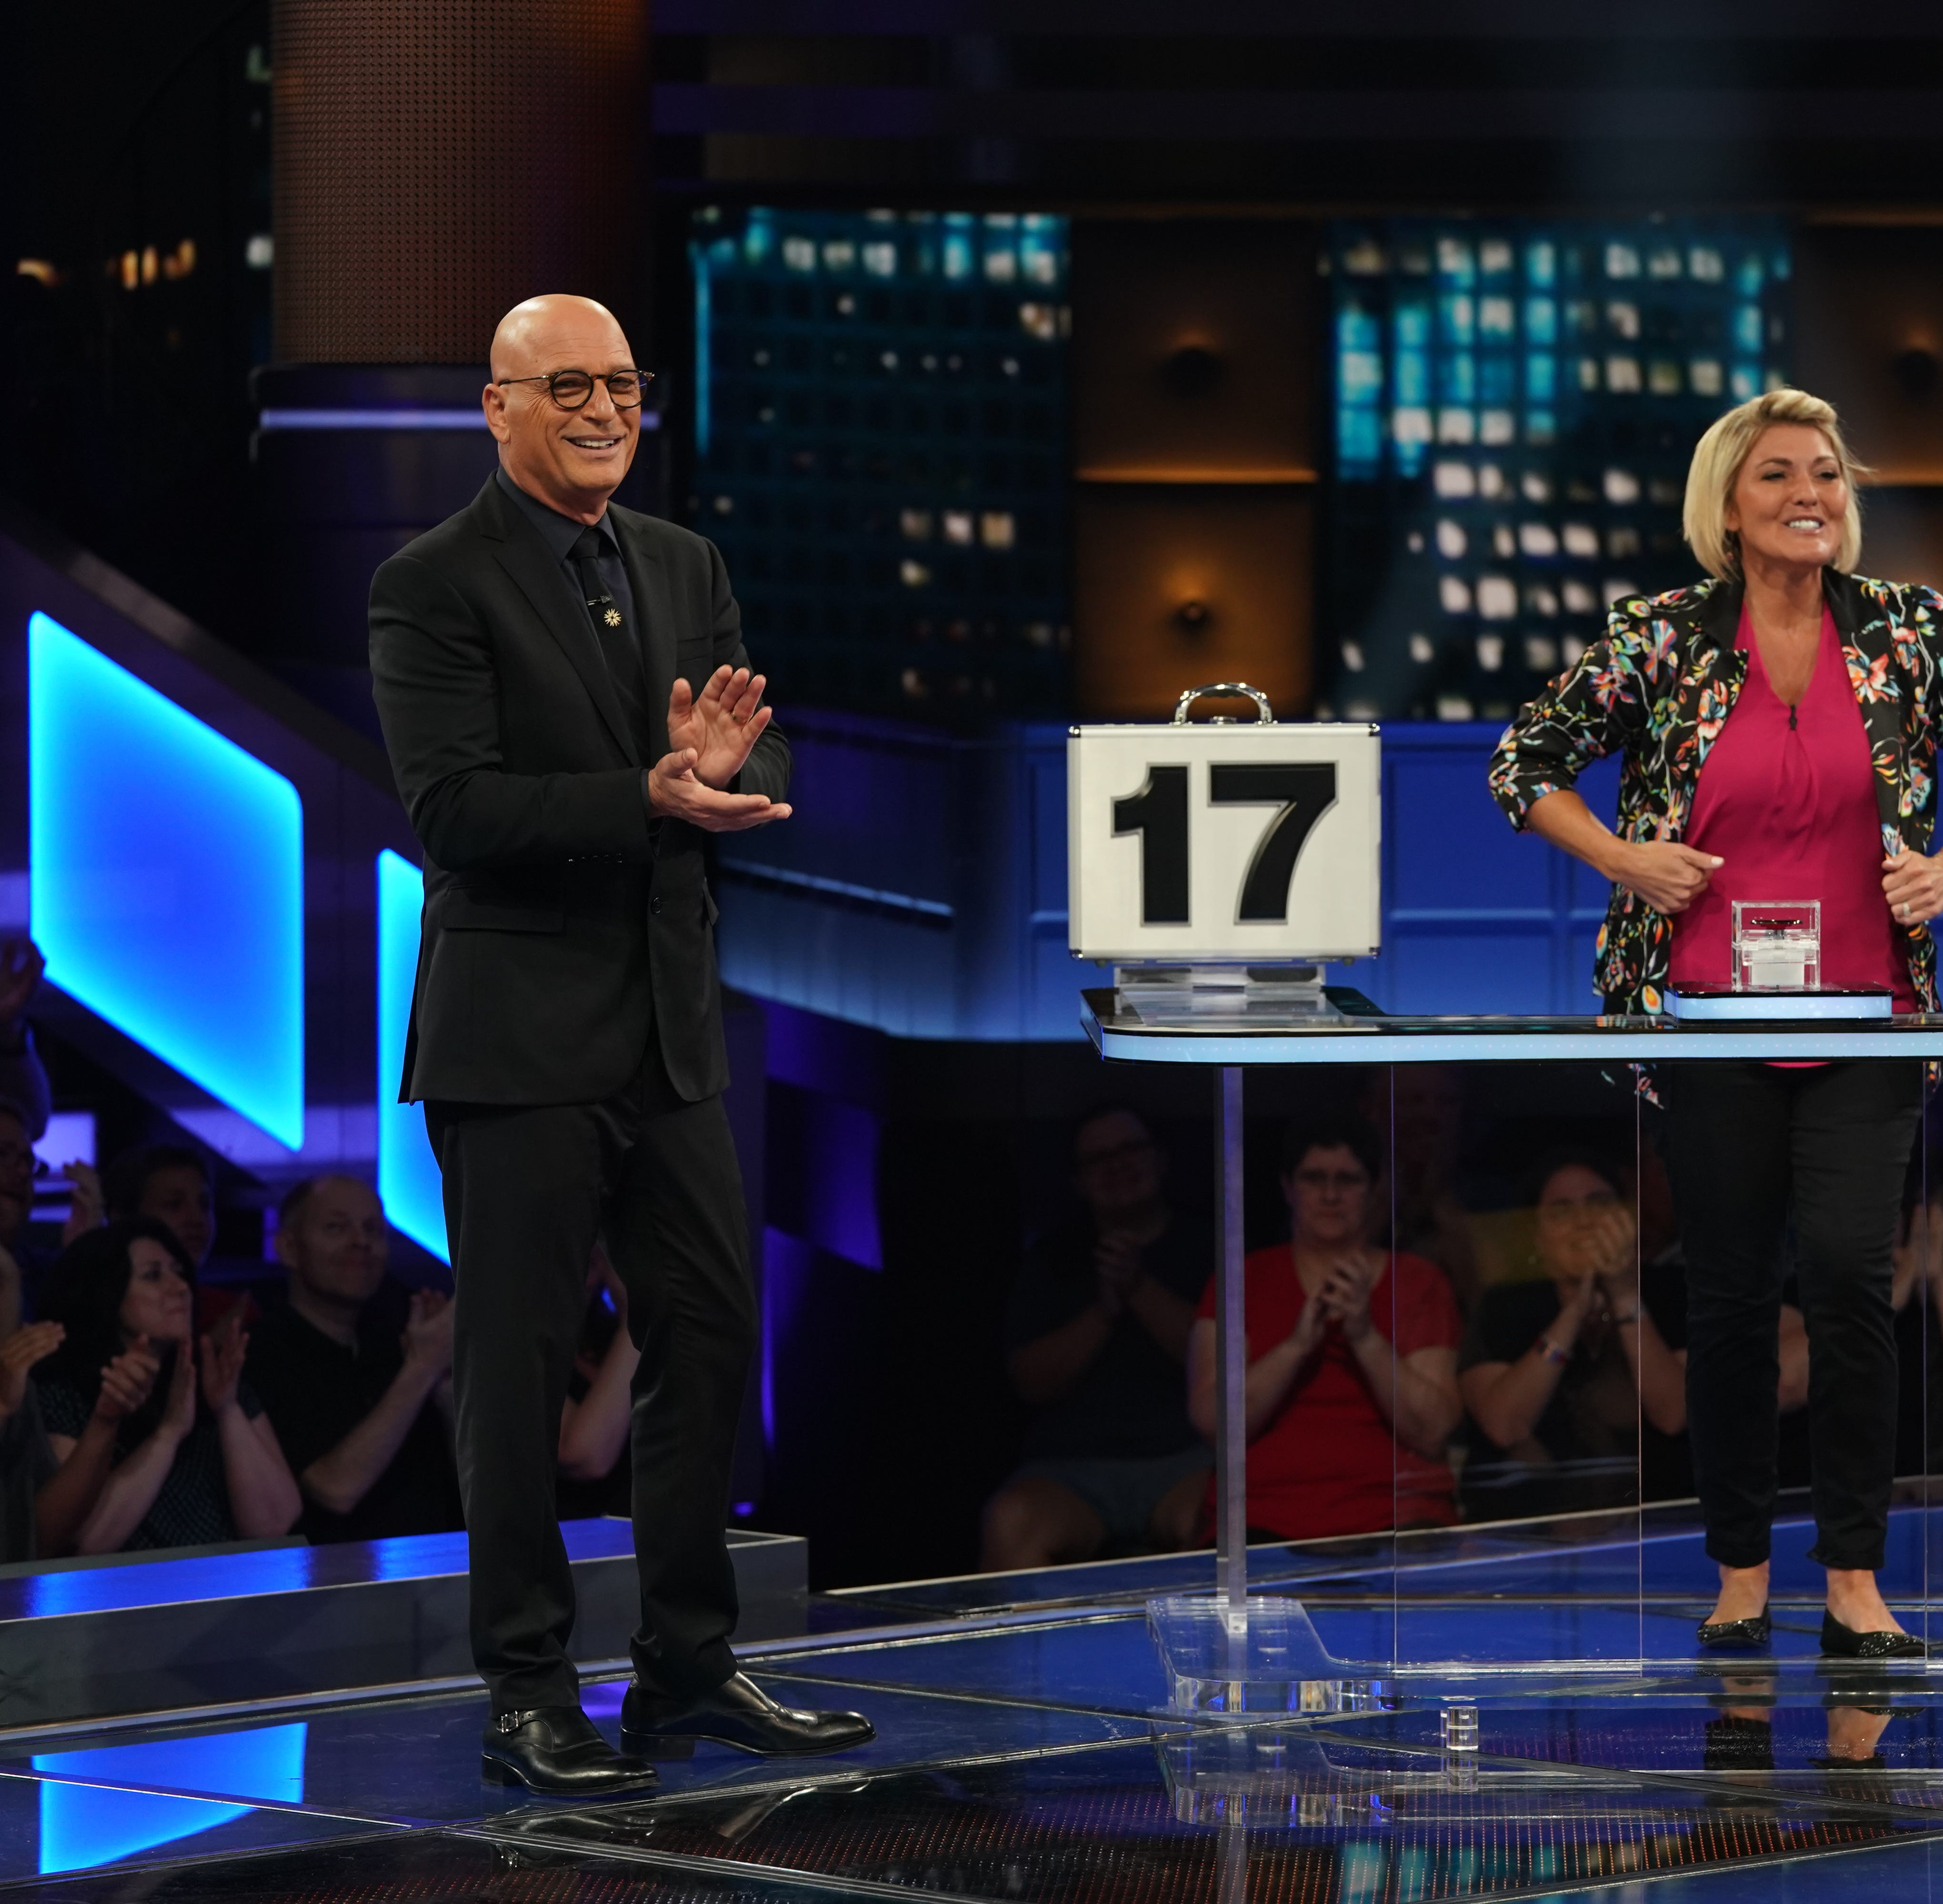 'Deal or No Deal' jackpot: Circleville native wins $34,000 on CNBC game show